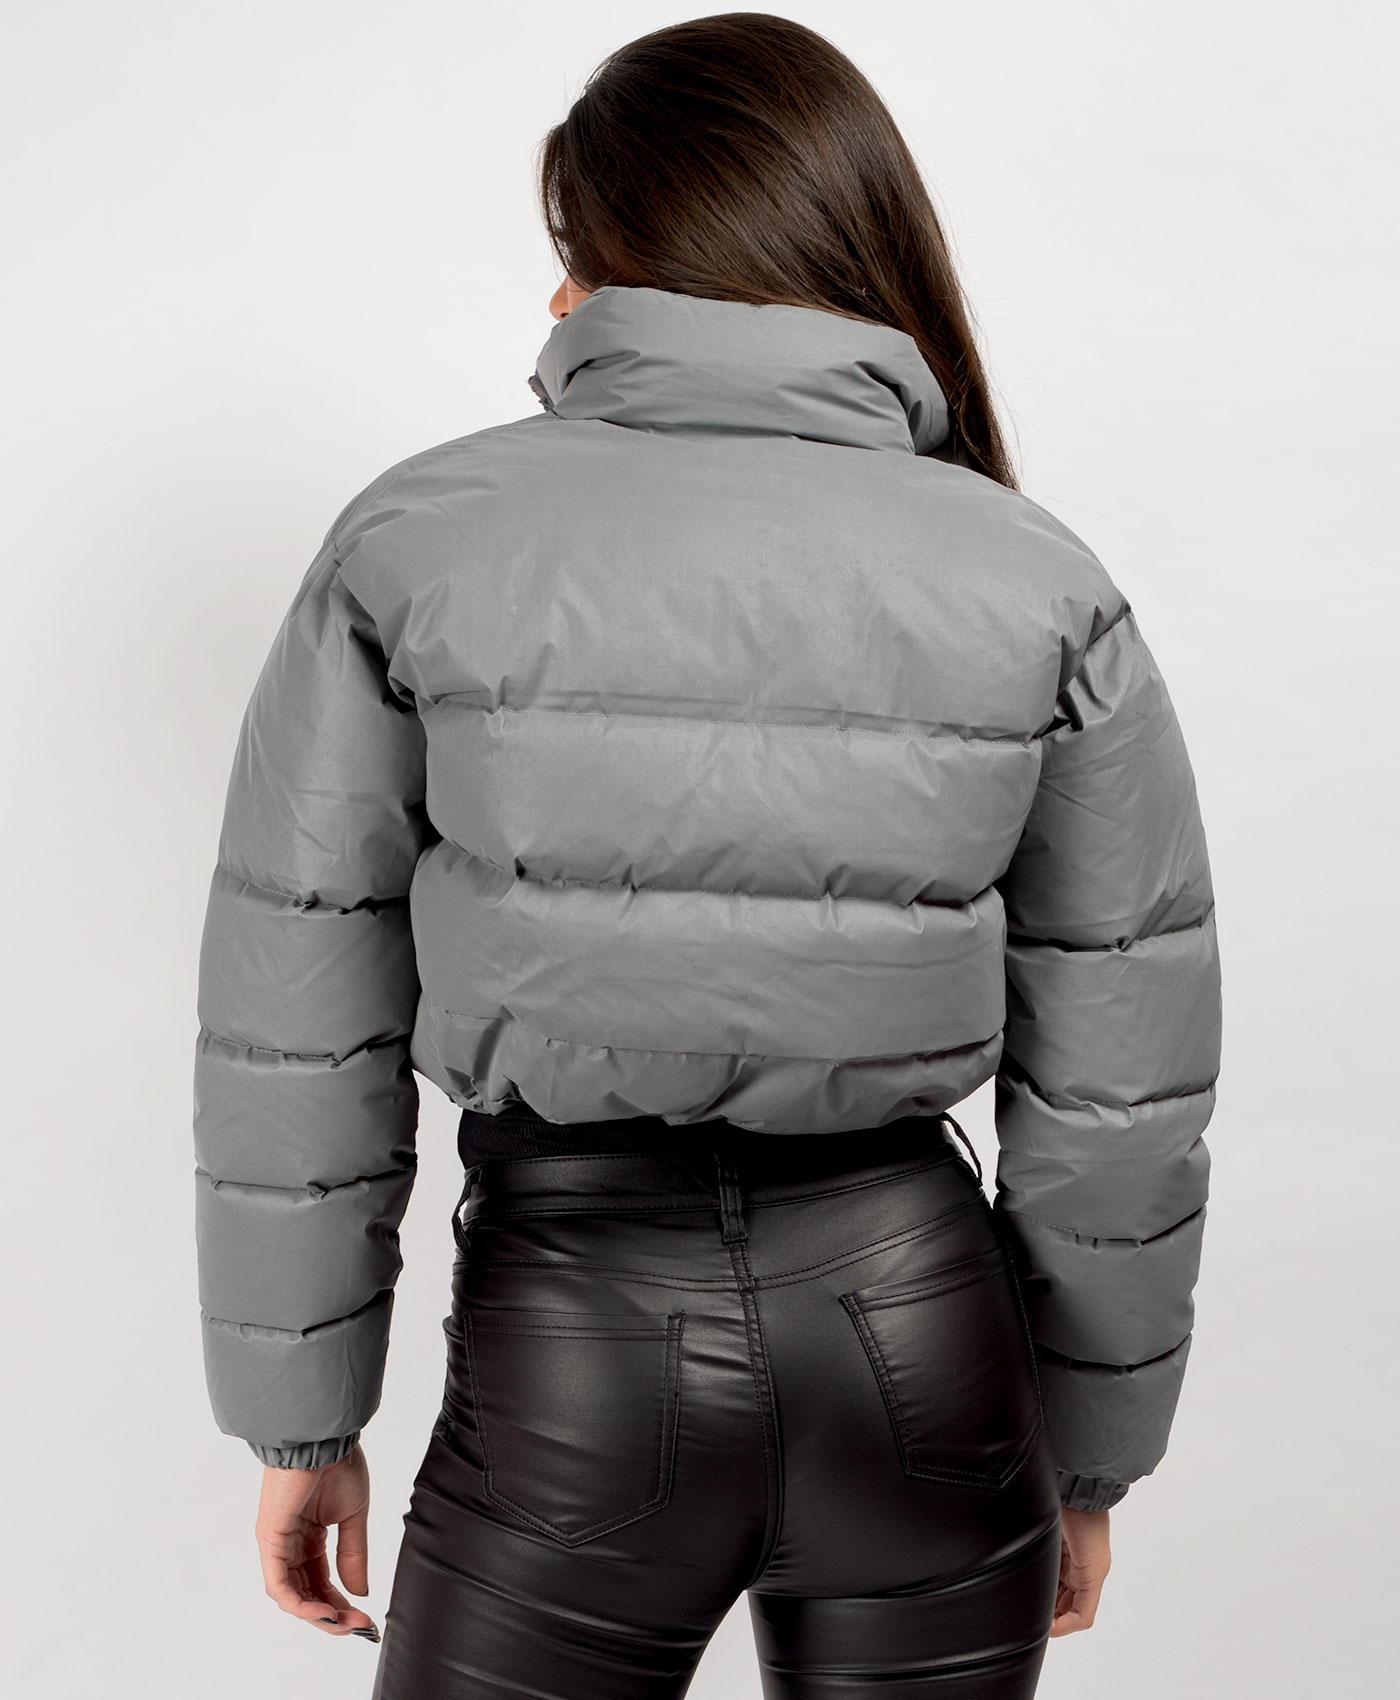 Womens-Reflective-Hi-Visibility-Thick-Puffer-Padded-Quilted-Cropped-Jacket-Coat Indexbild 23